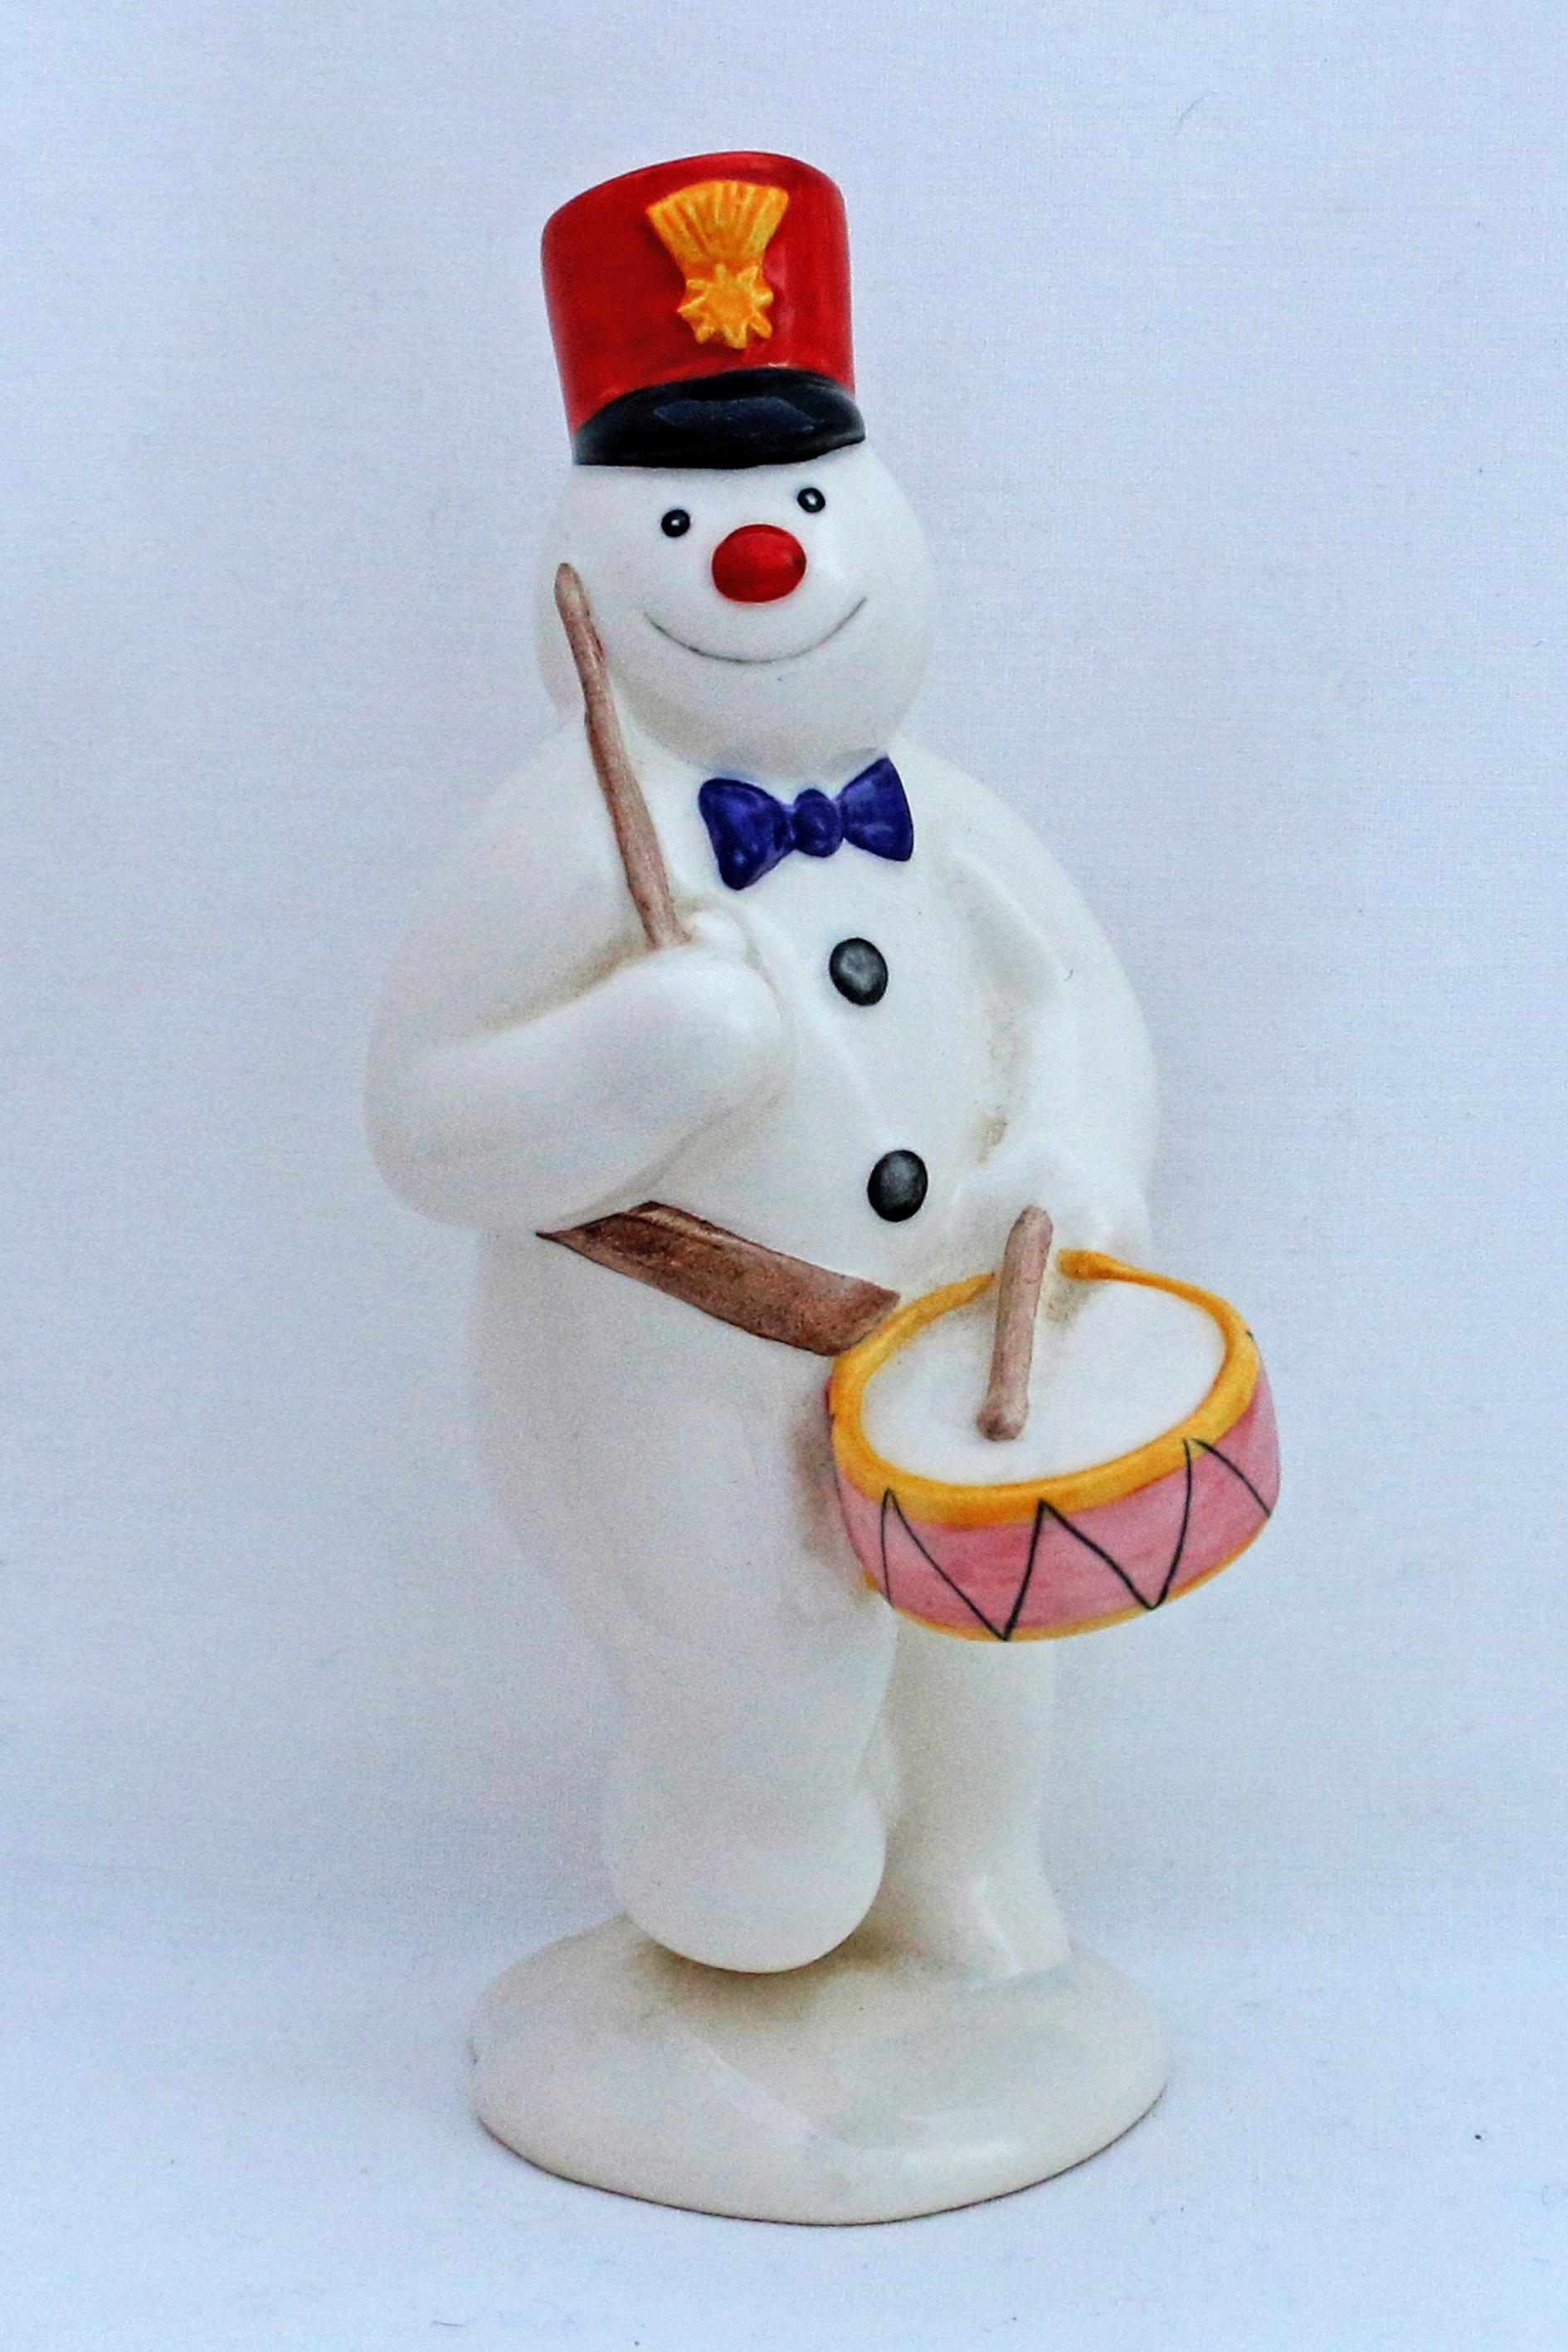 Royal Doulton DS15 Drummer Snowman